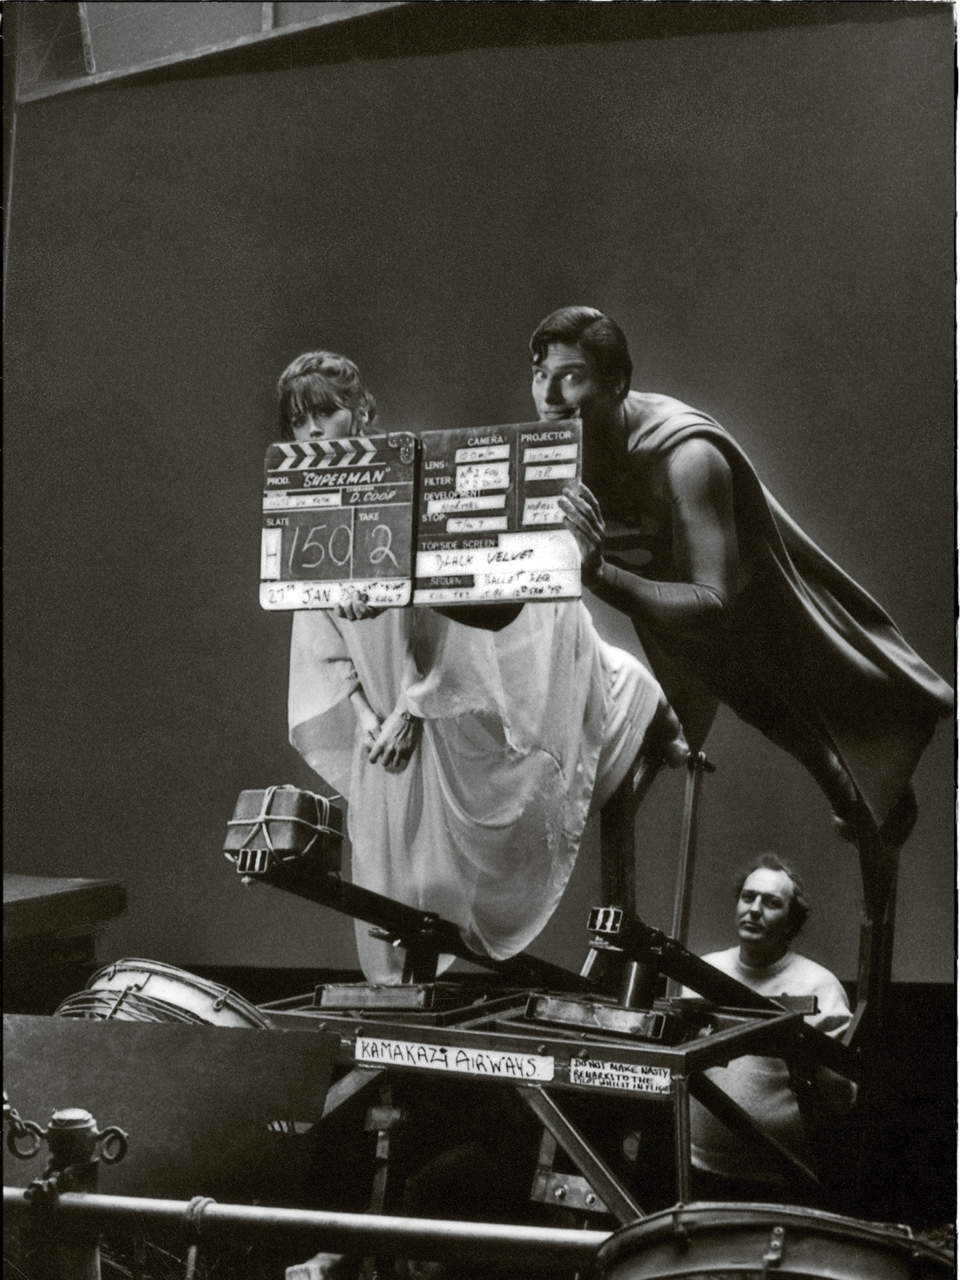 photo tournage coulisse cinema Superman 19 Photos sur des tournages de films #2  photo featured cinema 2 bonus